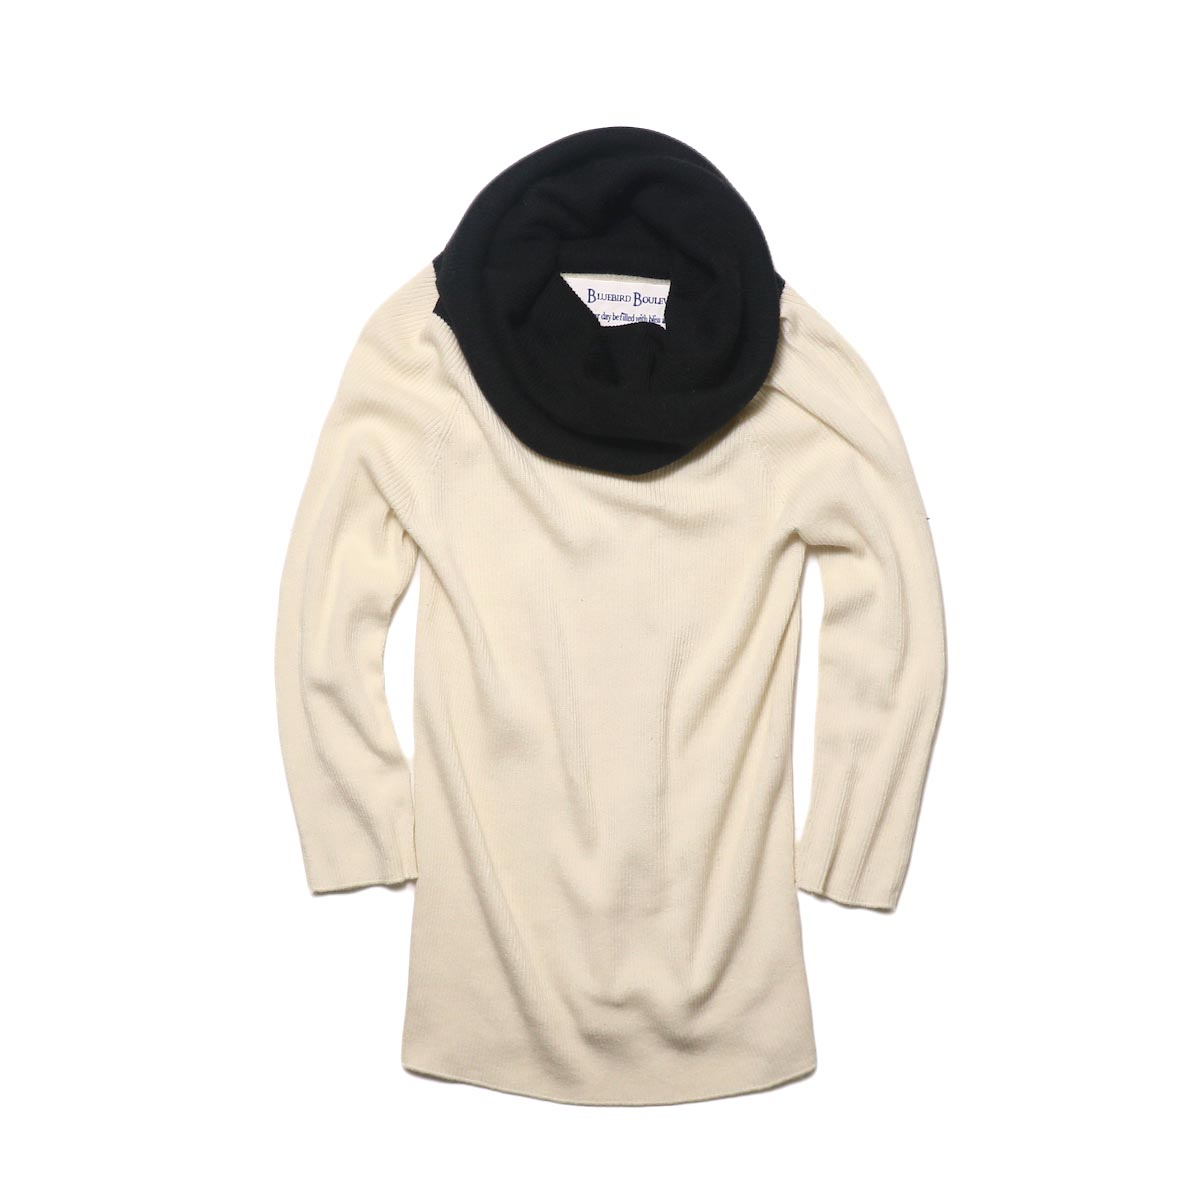 BLUEBIRD BOULEVARD Cotton & Angora Wide Turtleneck Sweater (white) 正面②